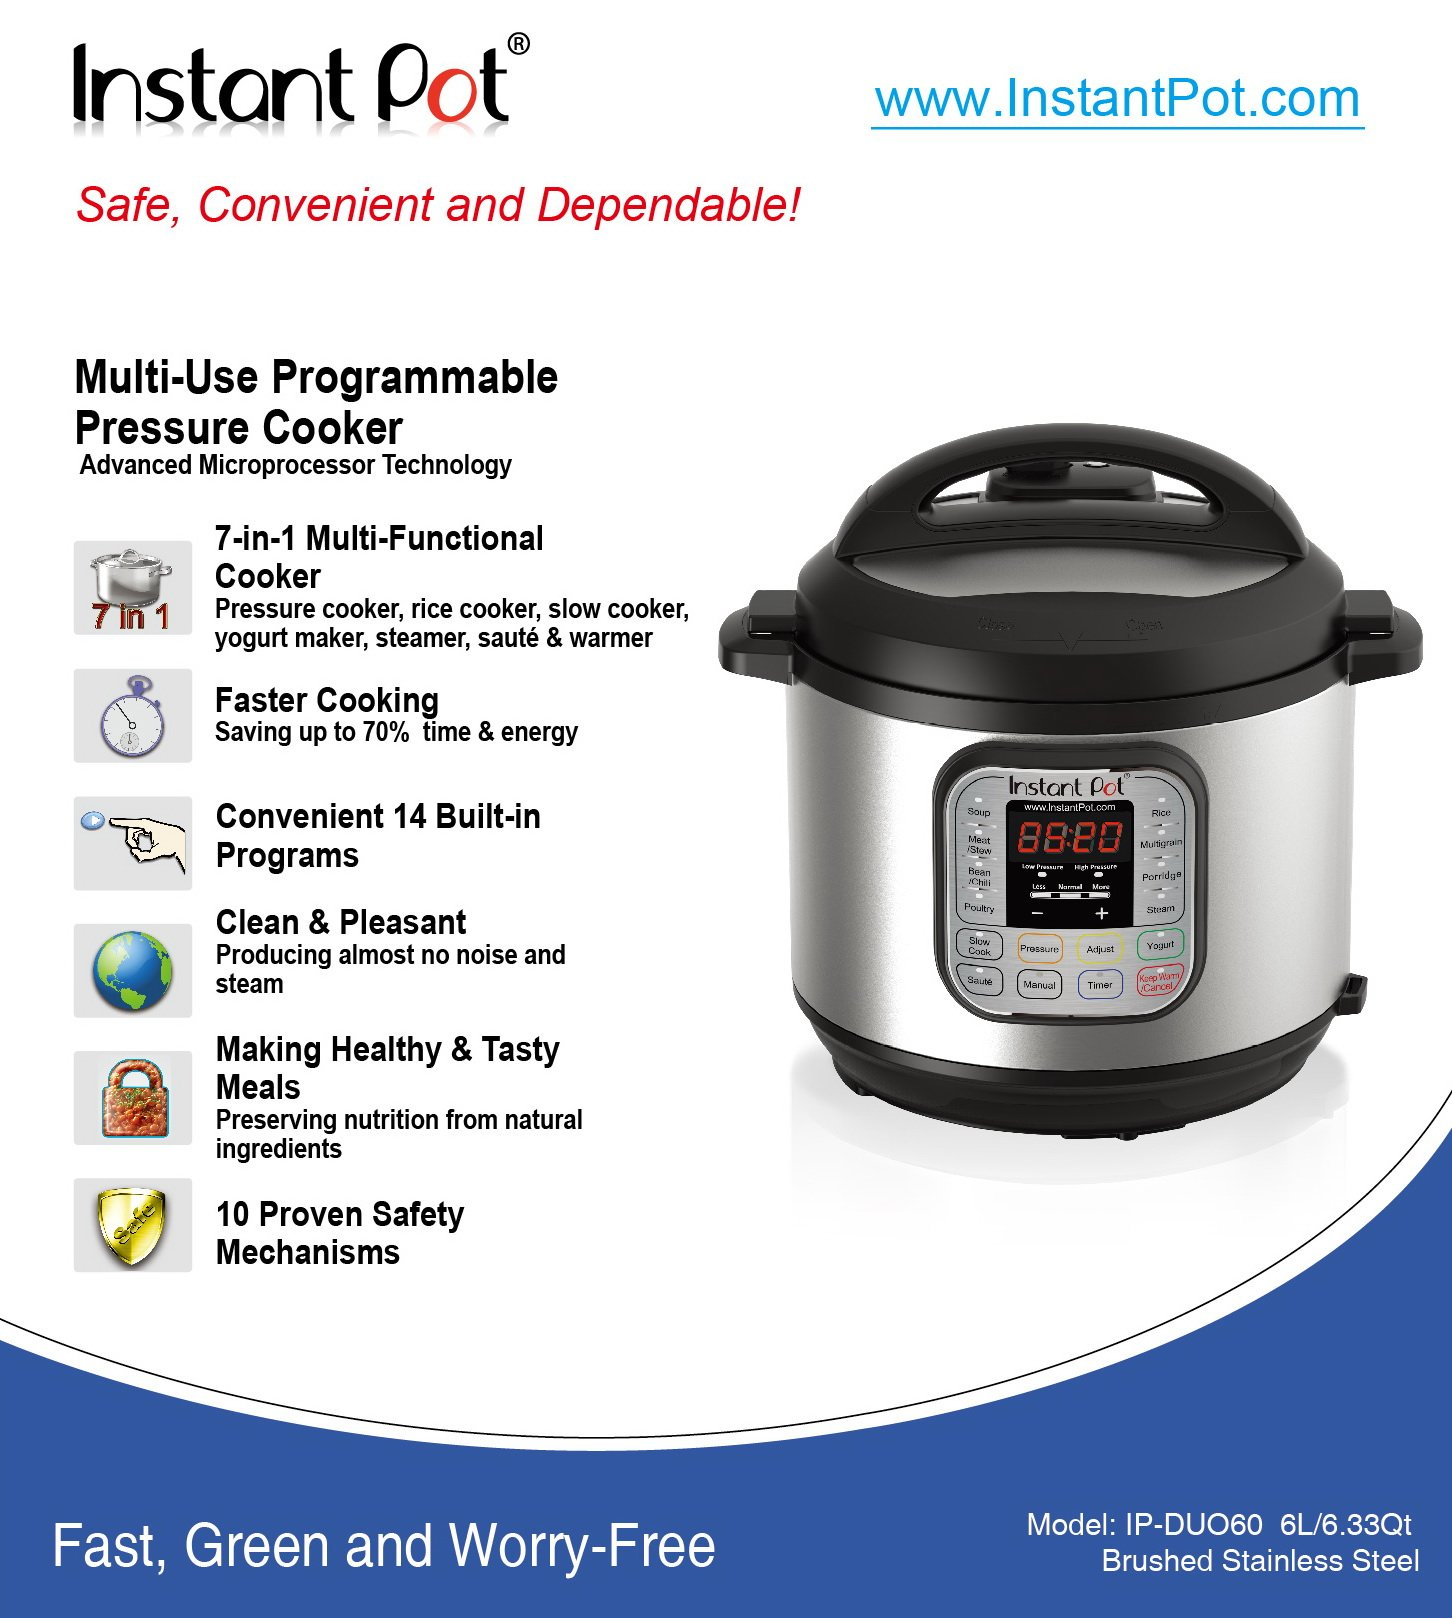 Instant Pot DUO60 6 Qt 7-in-1 Multi-Use Programmable Pressure Cooker, Slow Cooker, Rice Cooker, Steamer, Sauté, Yogurt Maker and Warmer by Instant Pot (Image #6)